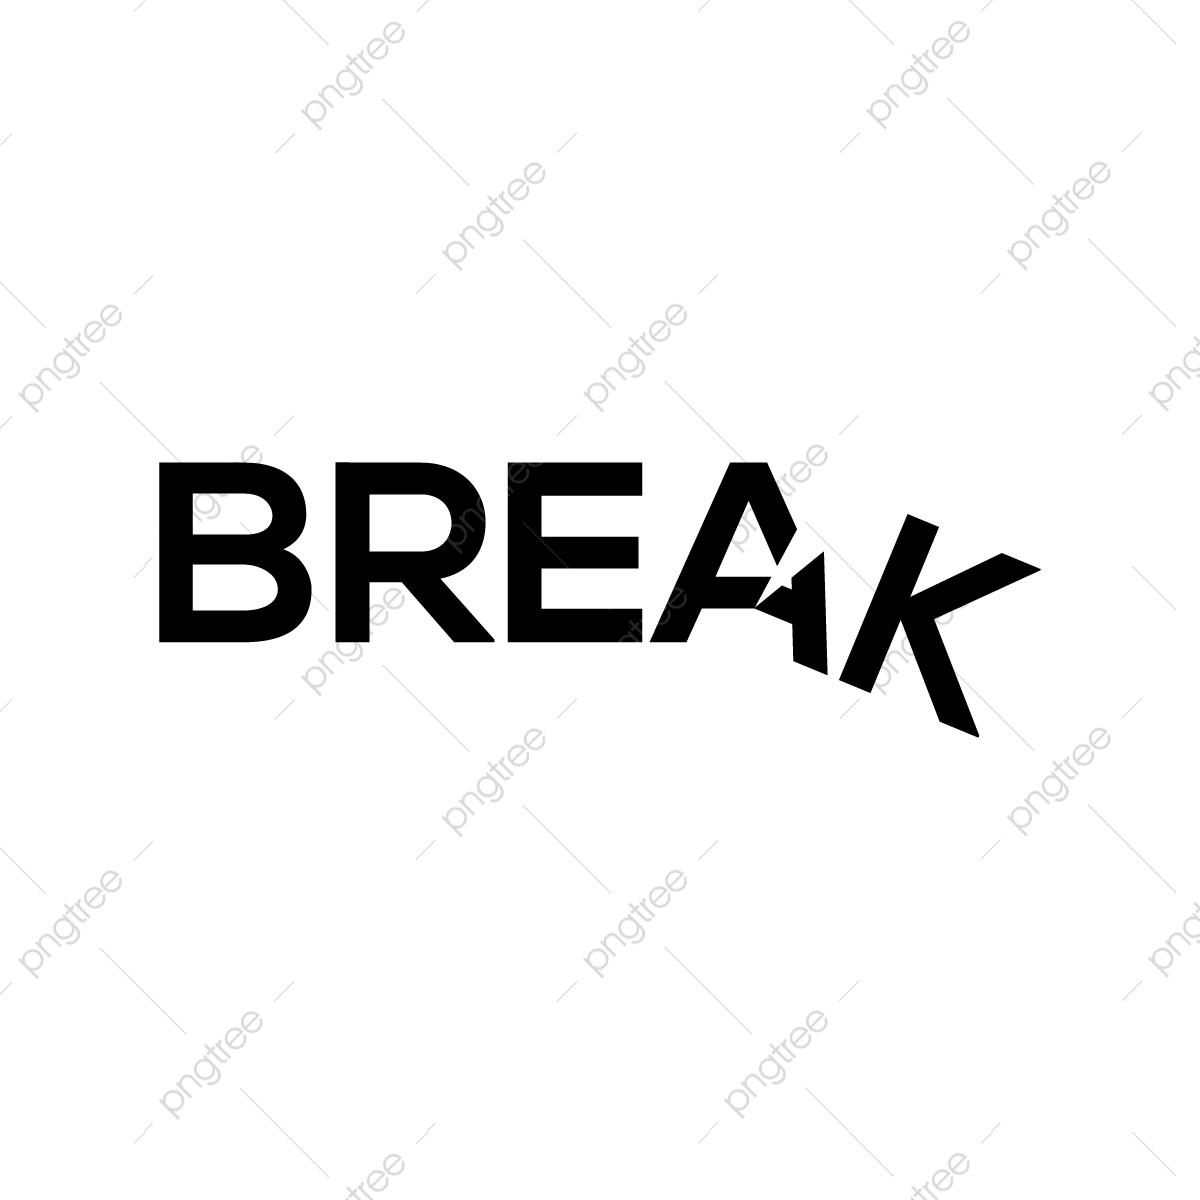 Break Word Art Design, Word Art Design, Break Design PNG and